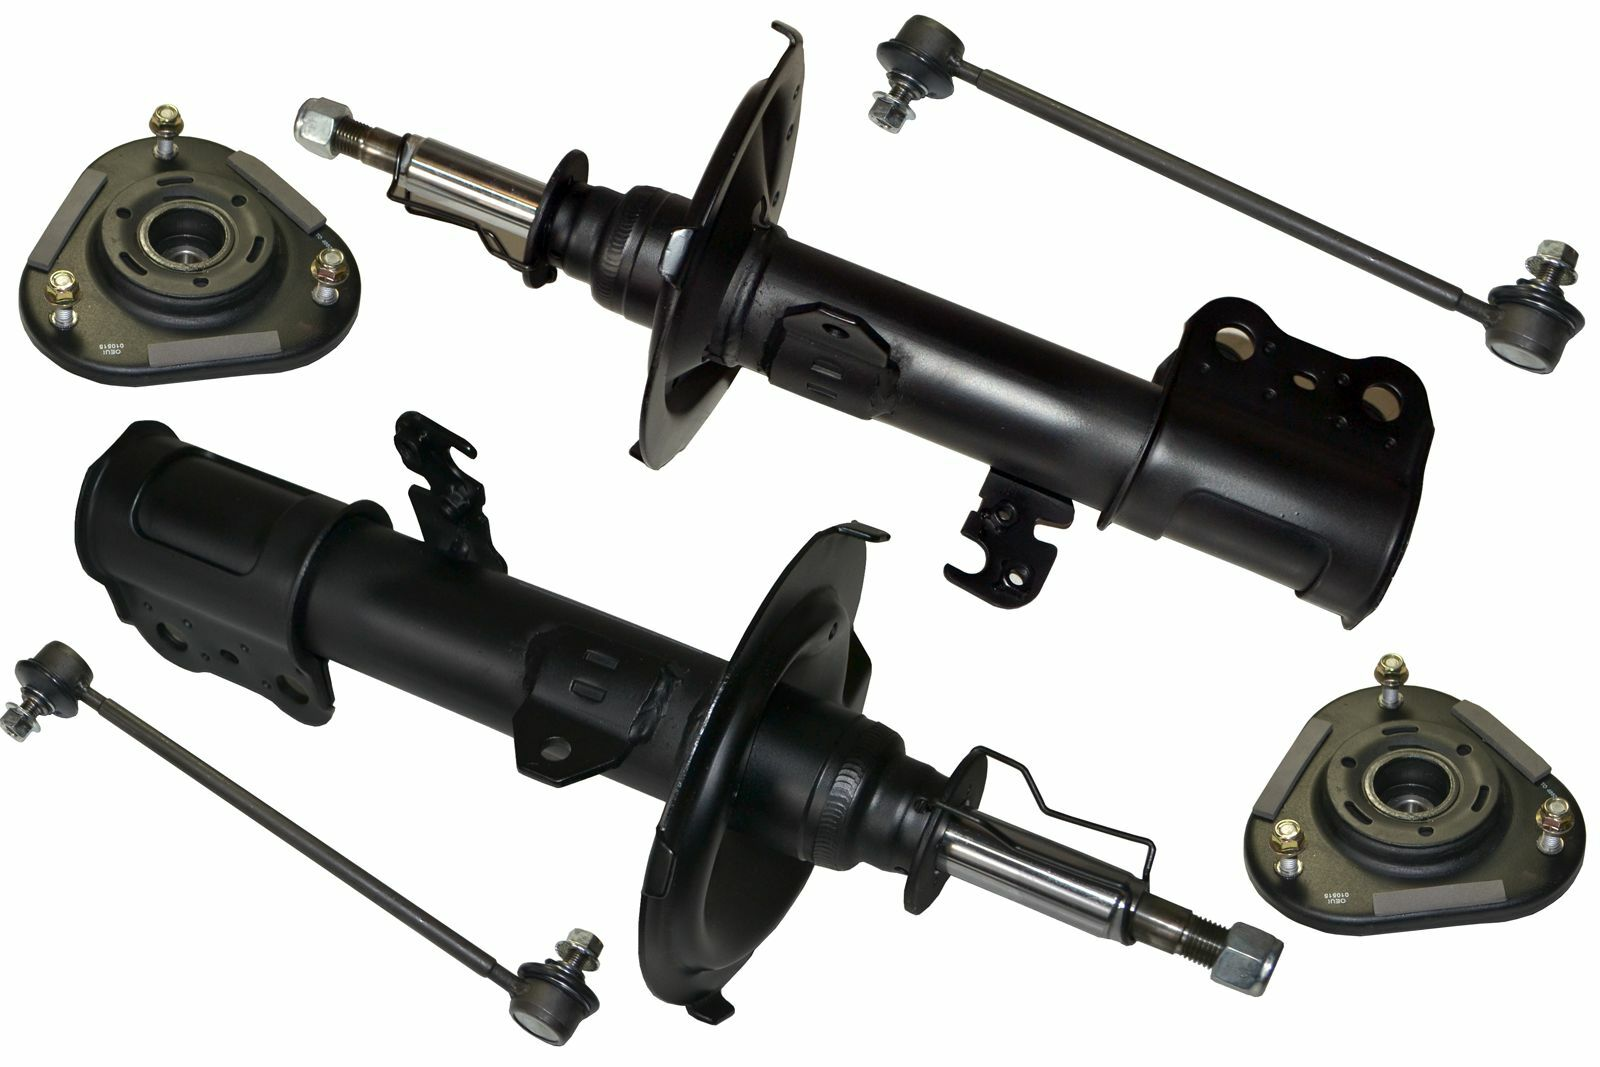 00 05 Toyota Celica Shocks Upper Strut Mount Replacement